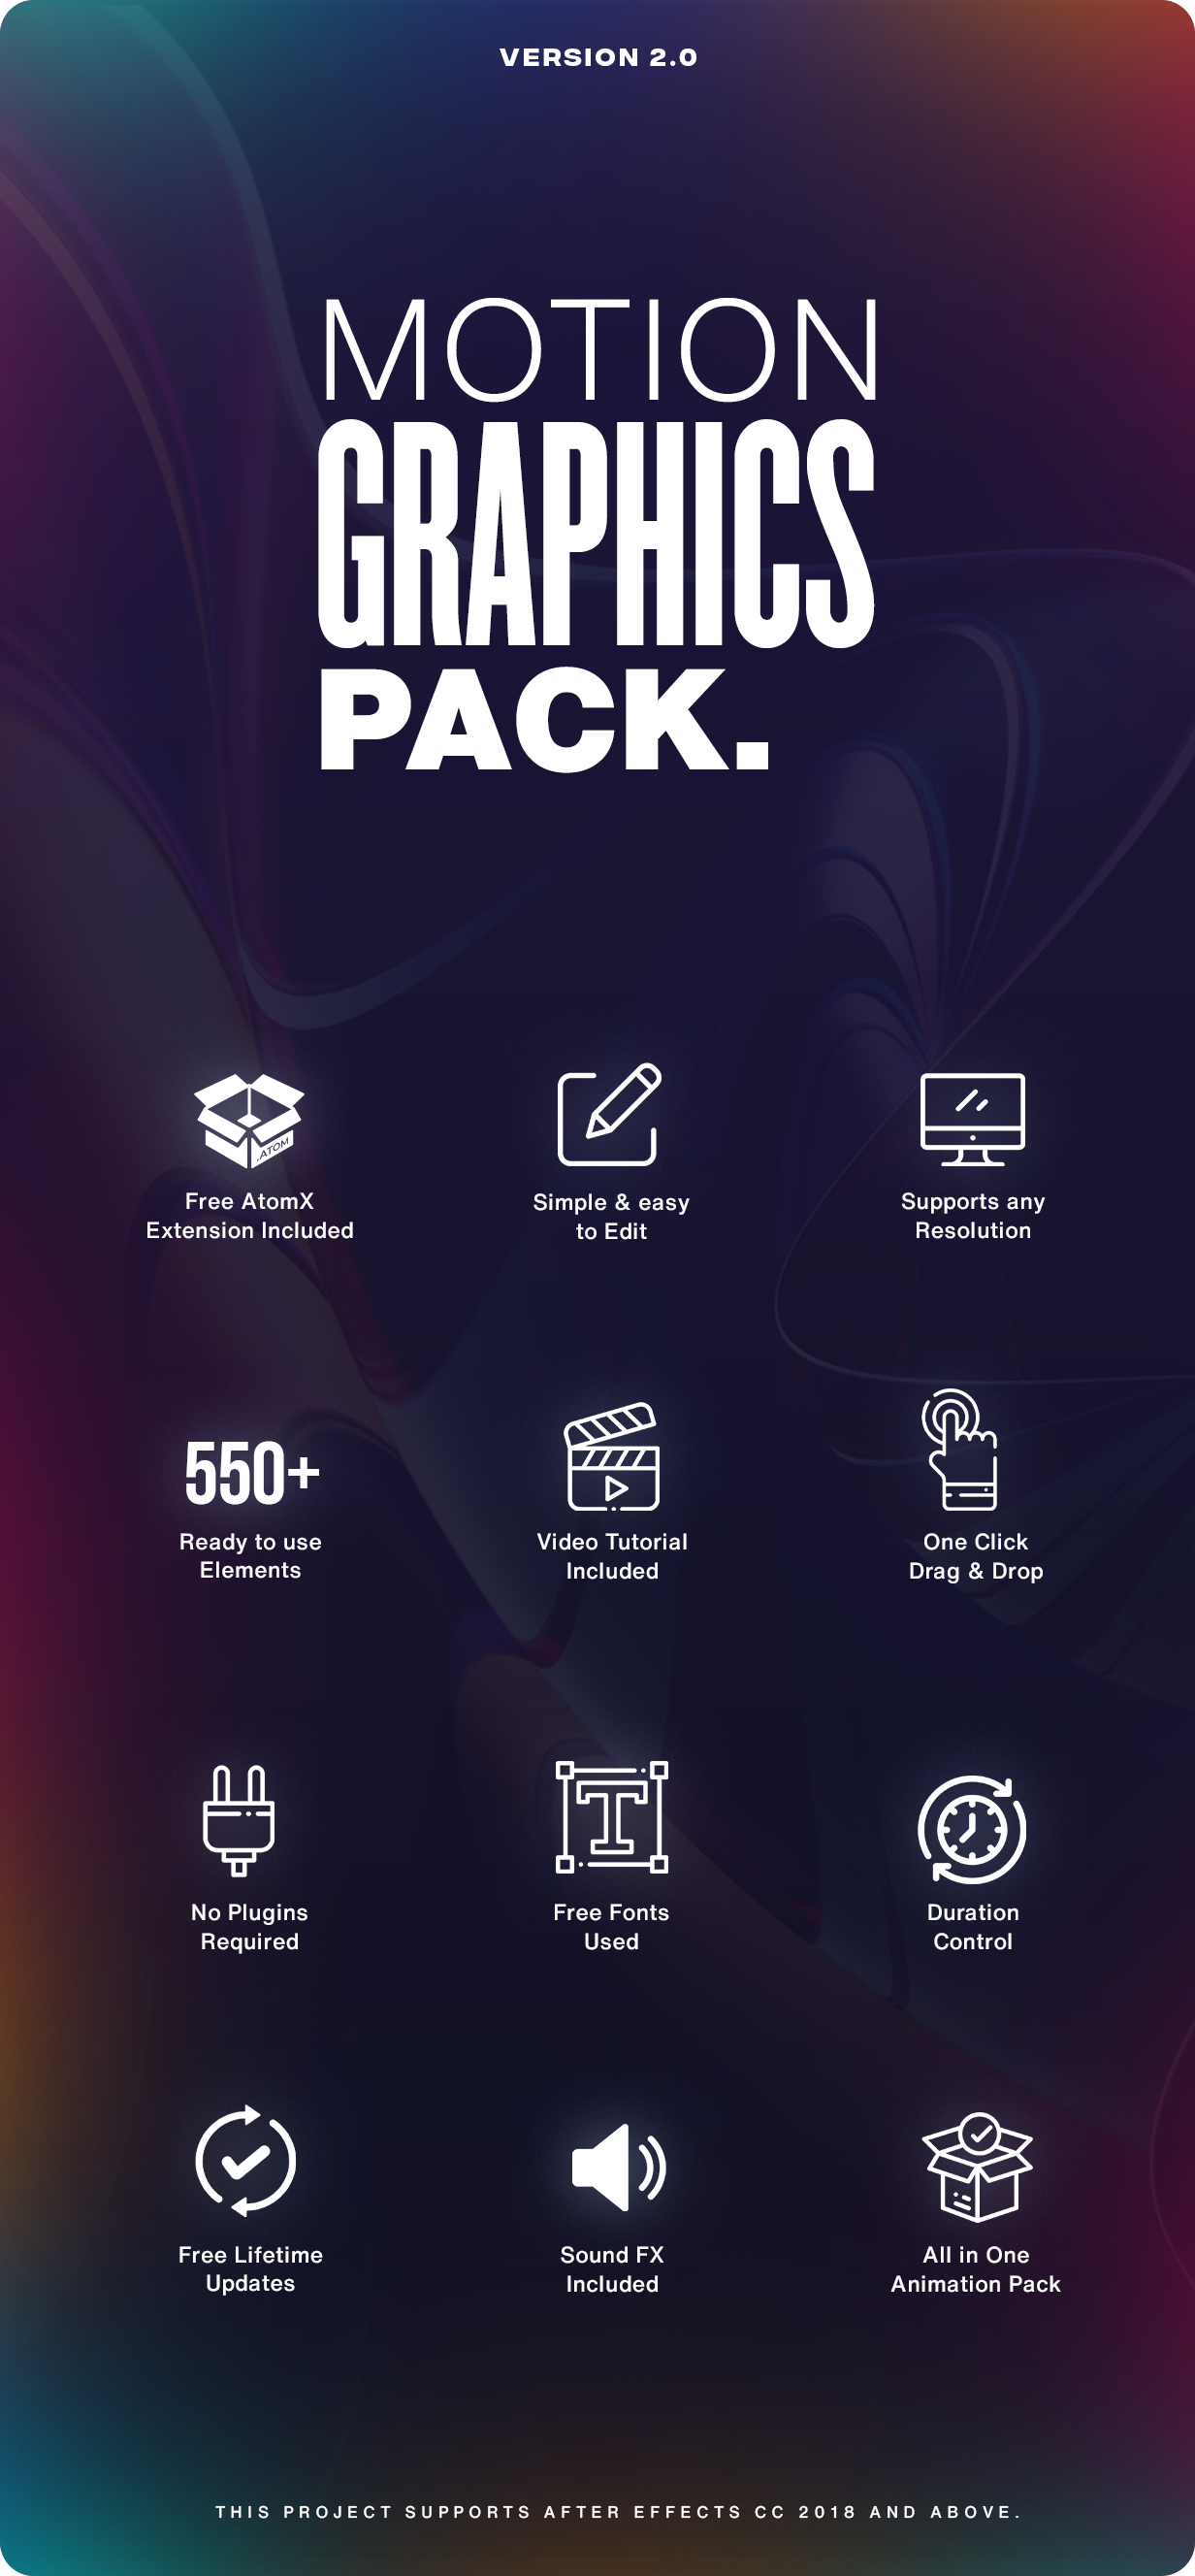 Motion Graphics Pack // 550+ Animations Pack - 2